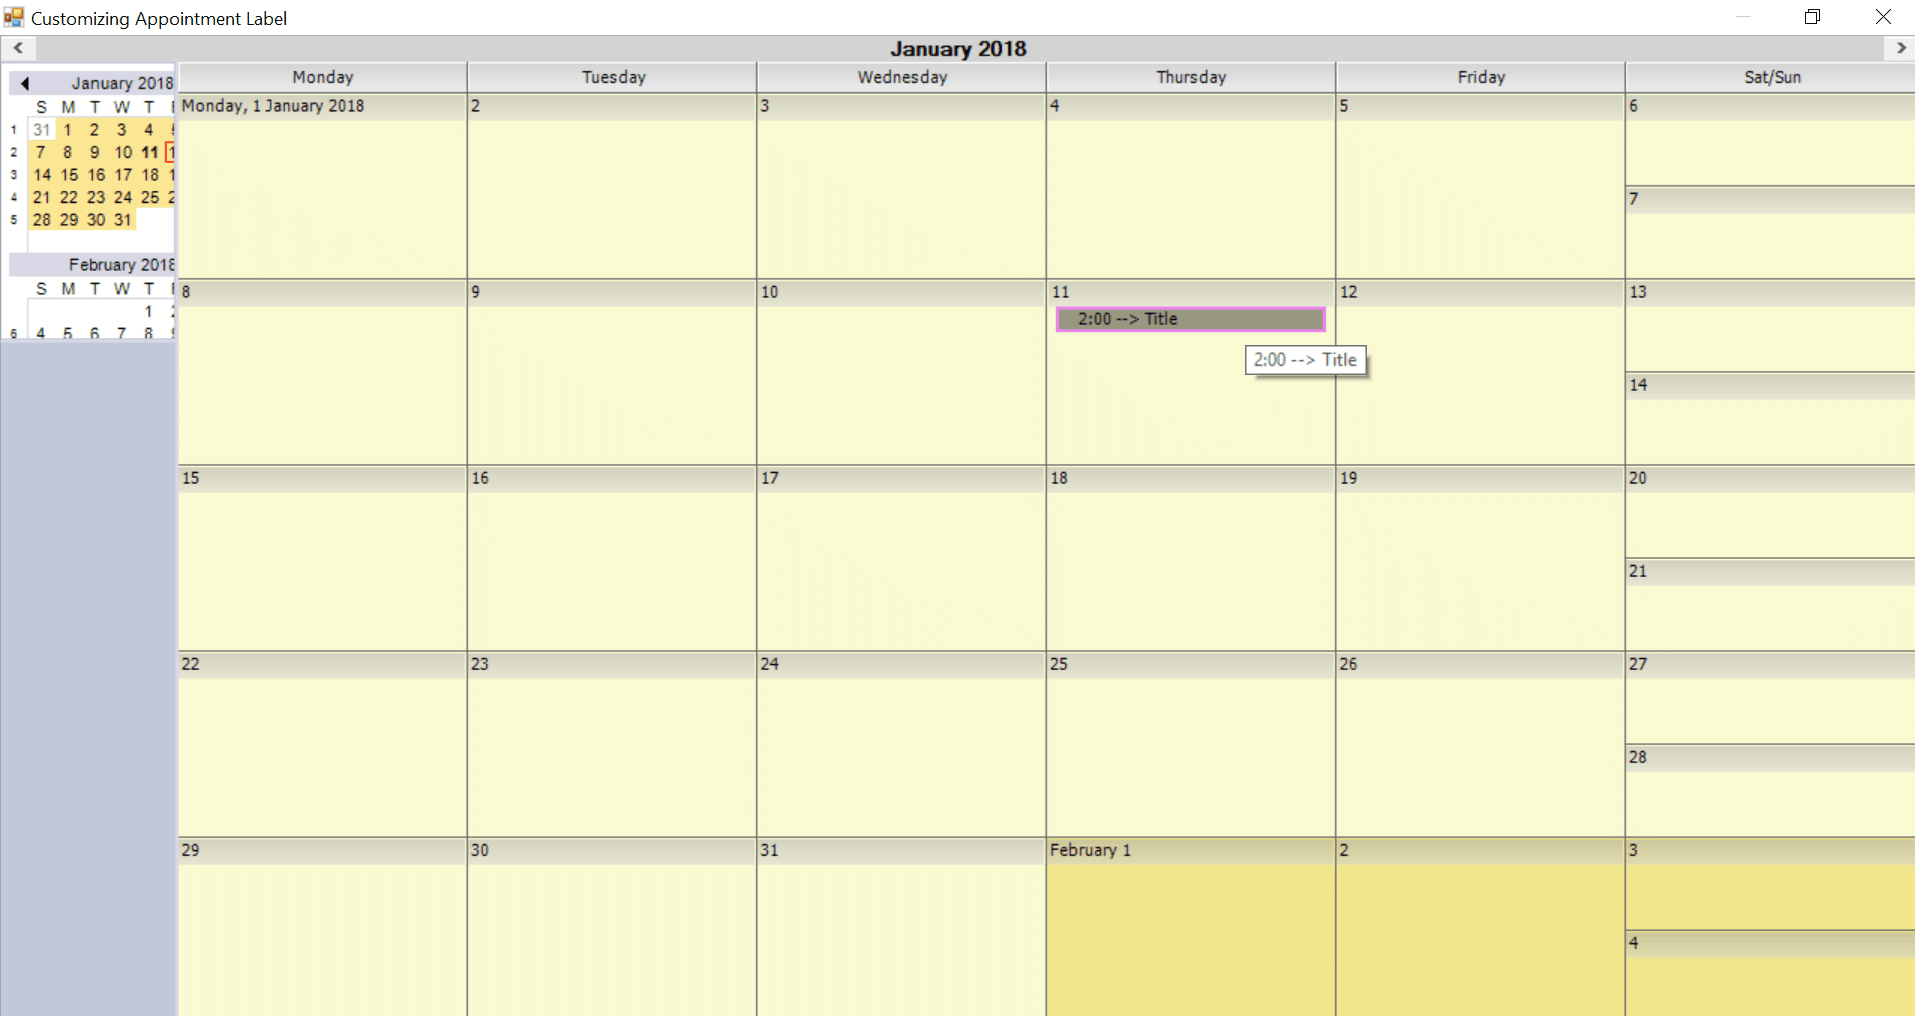 Change the label of appointments in the calendar